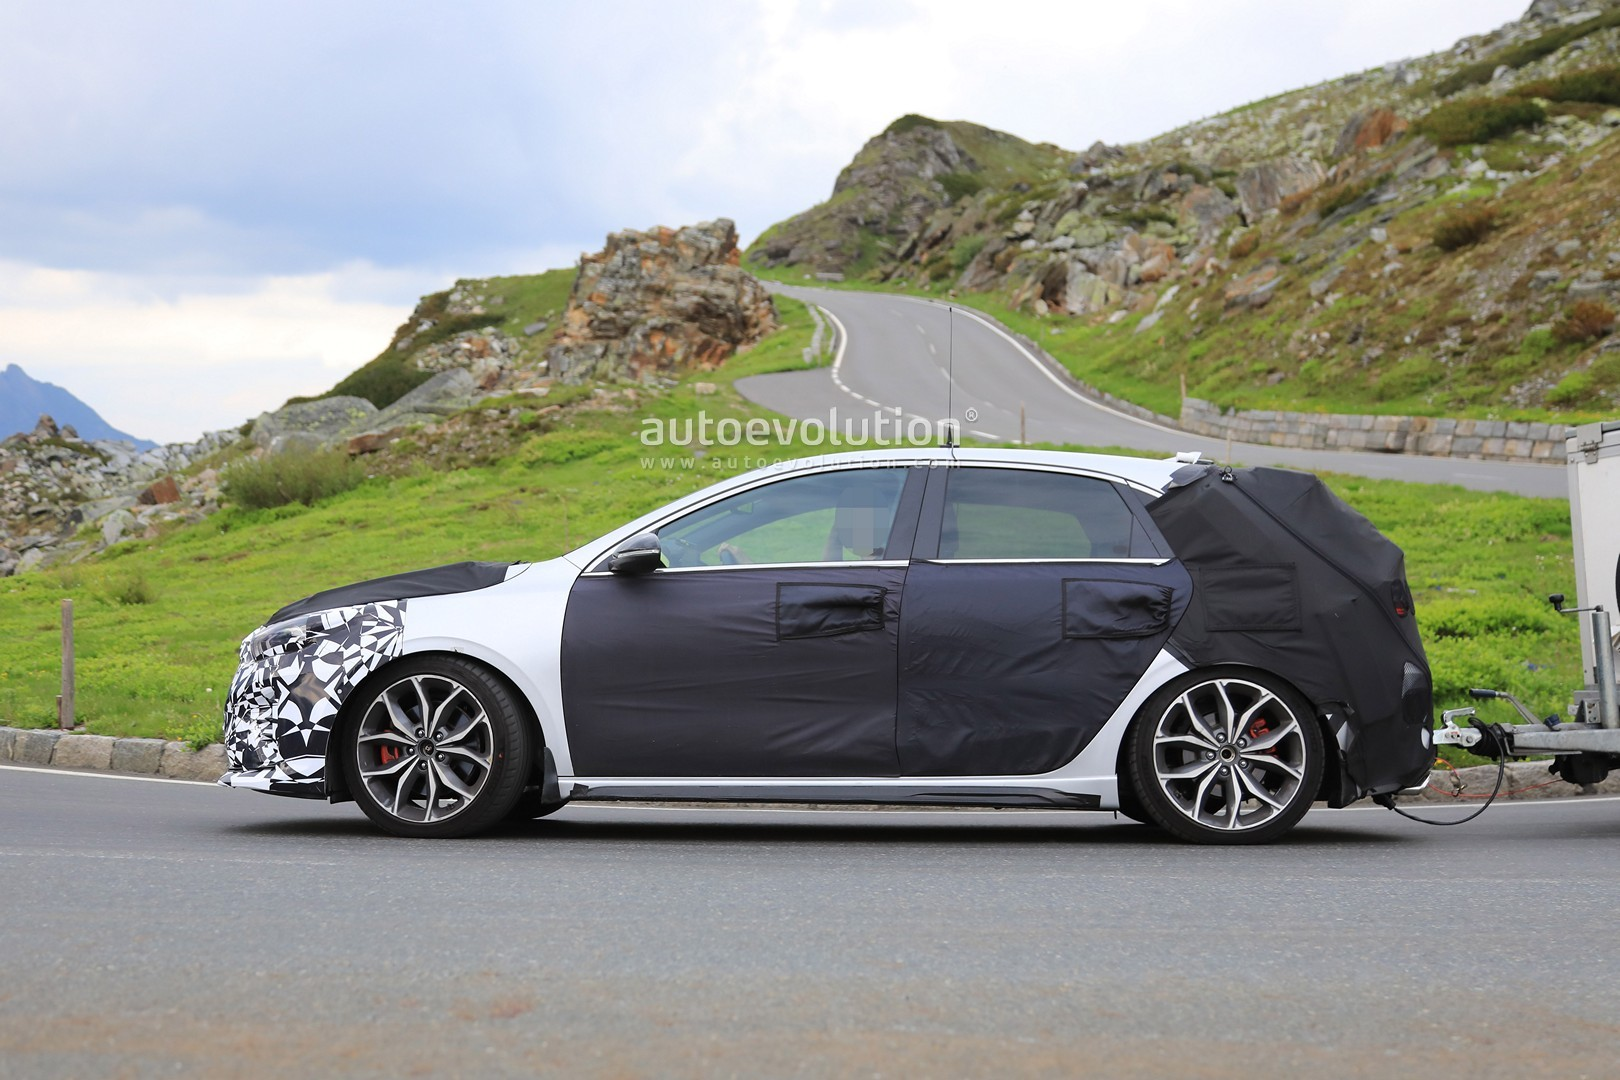 2019 kia ceed gt spied testing in the alps autoevolution. Black Bedroom Furniture Sets. Home Design Ideas